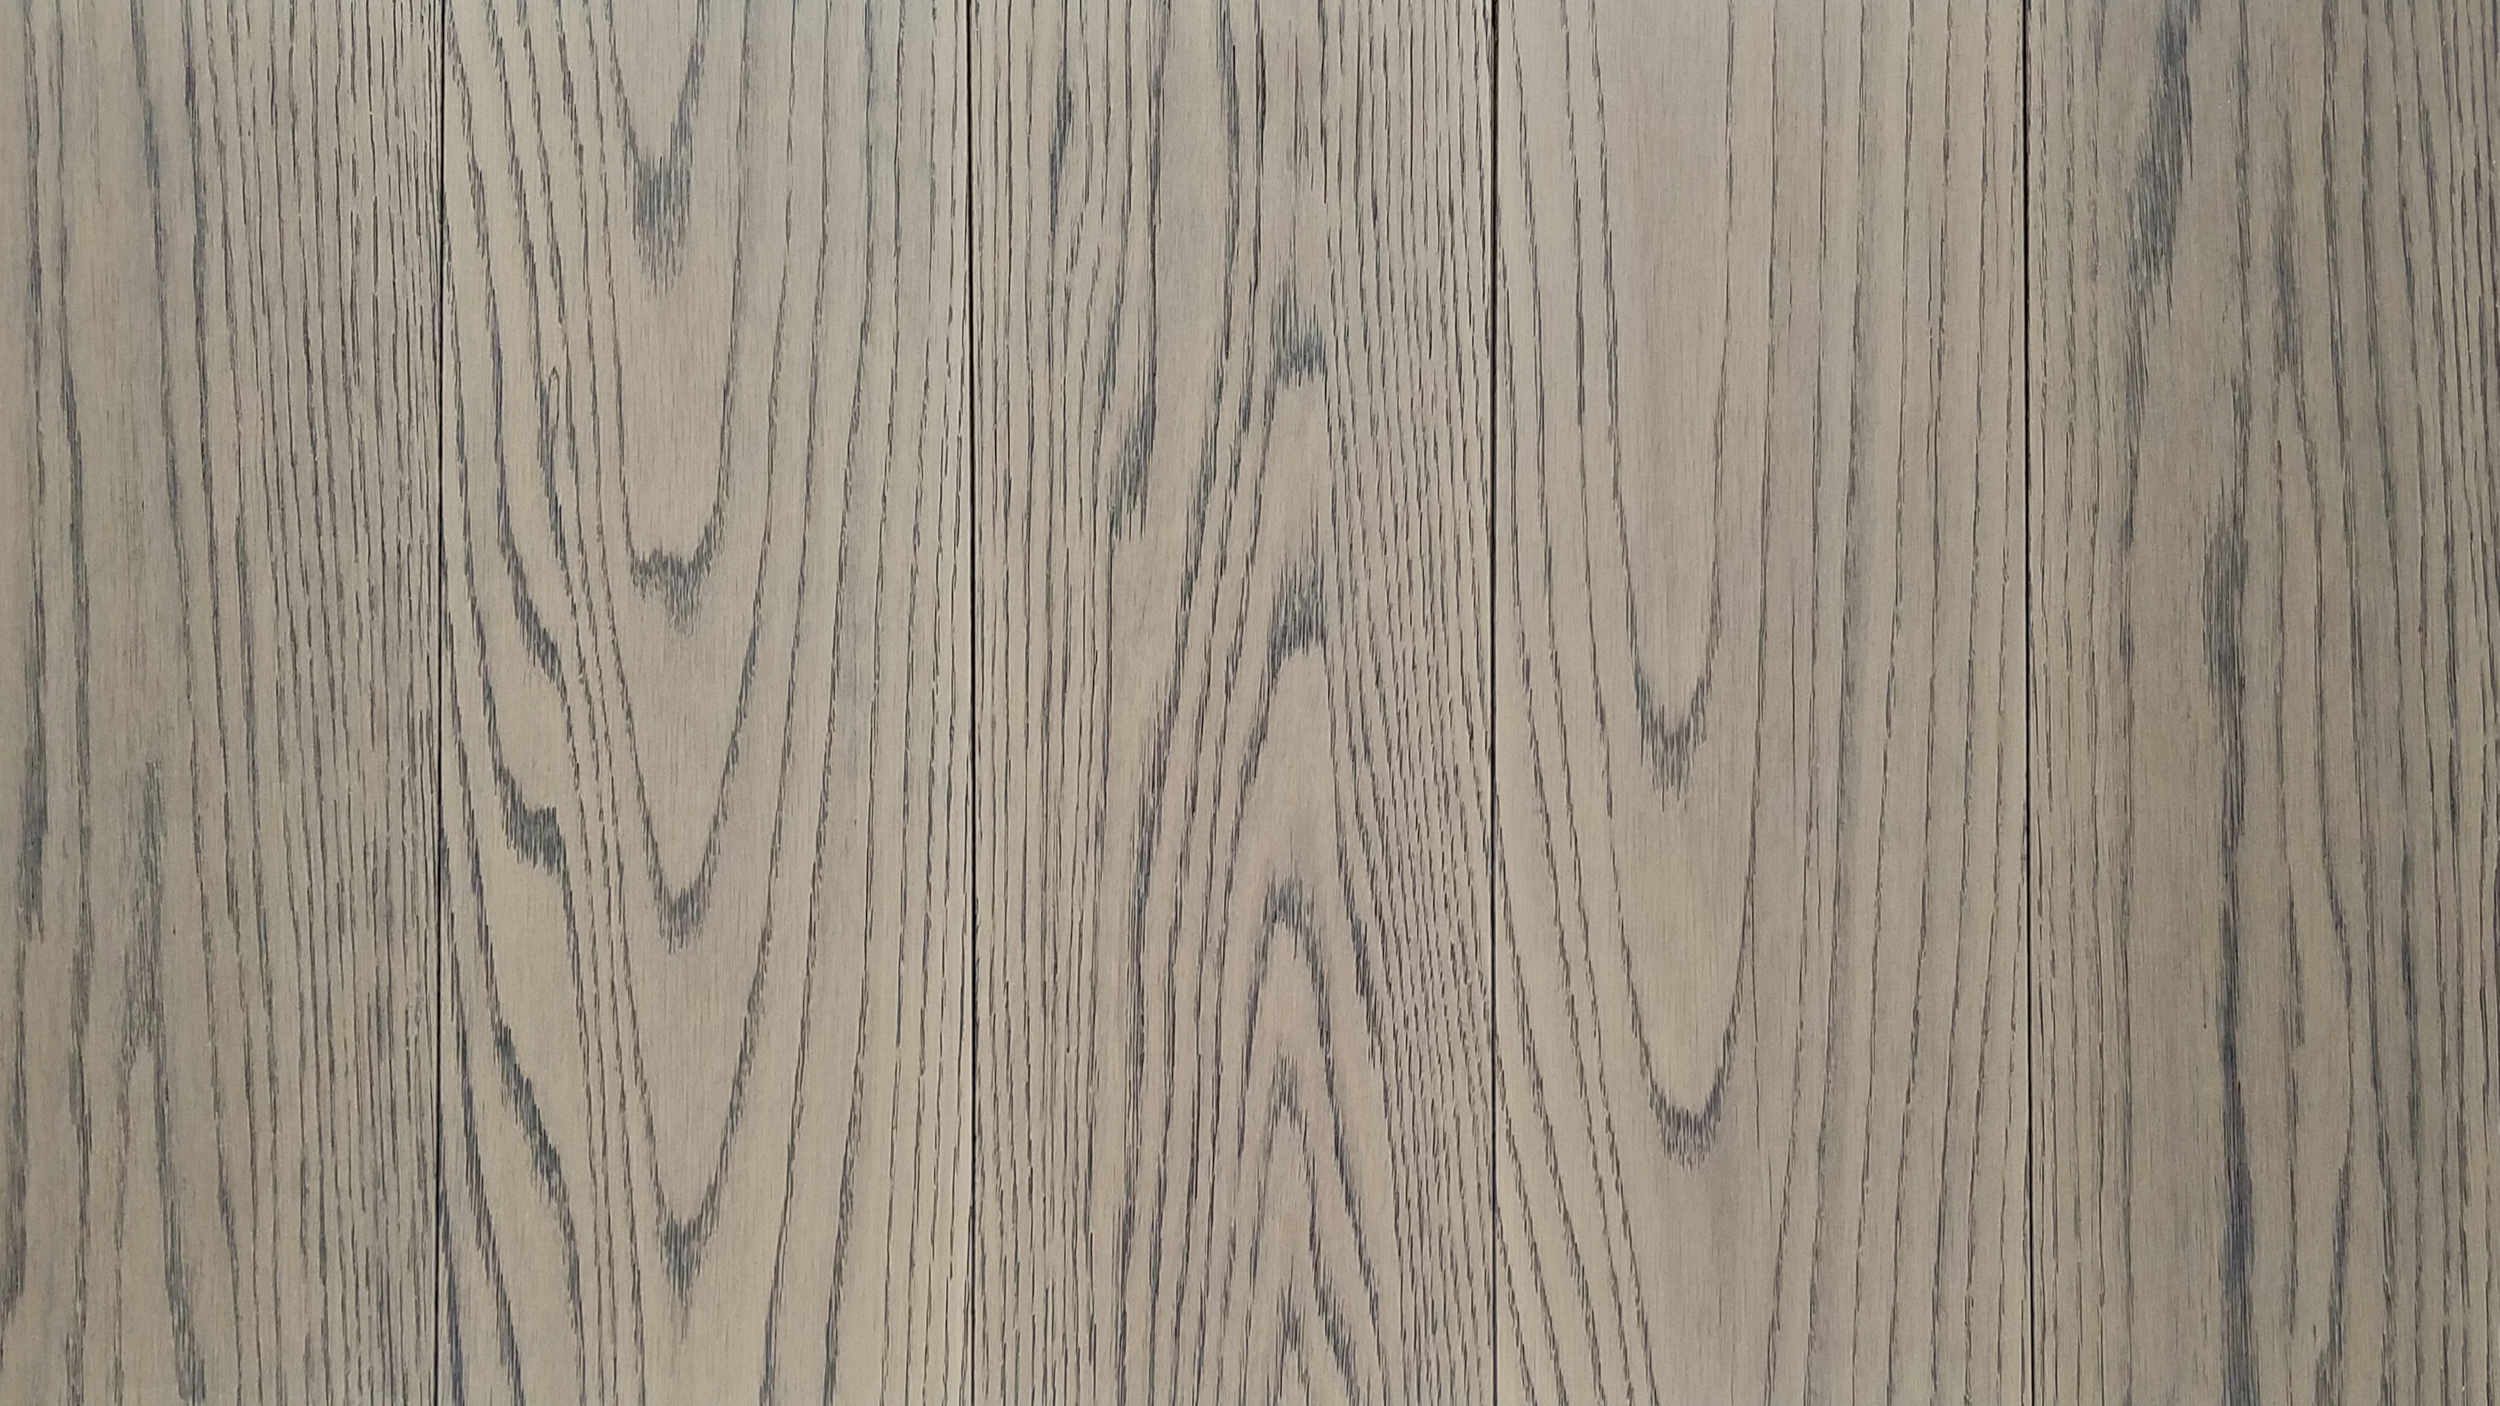 PN#8864 European White Oak